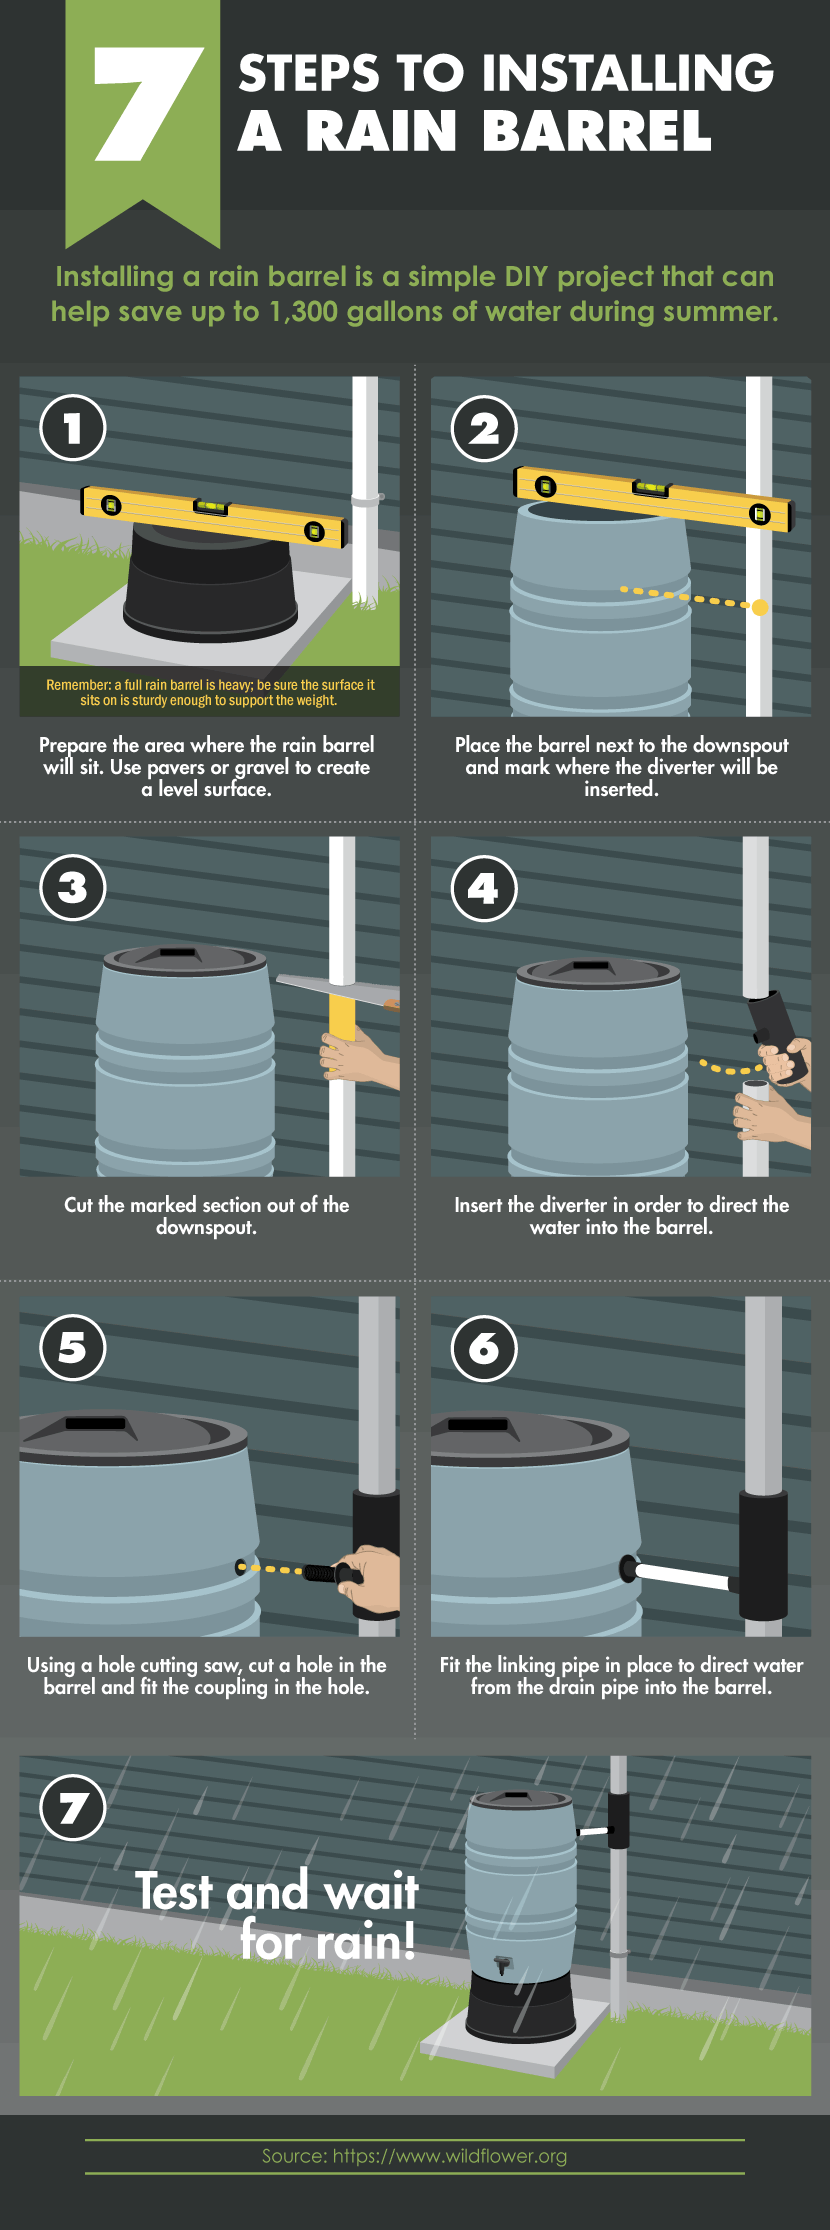 A Rainwater Collection System Is Something I Really Want To Start Using This Great Tutorial On How Install